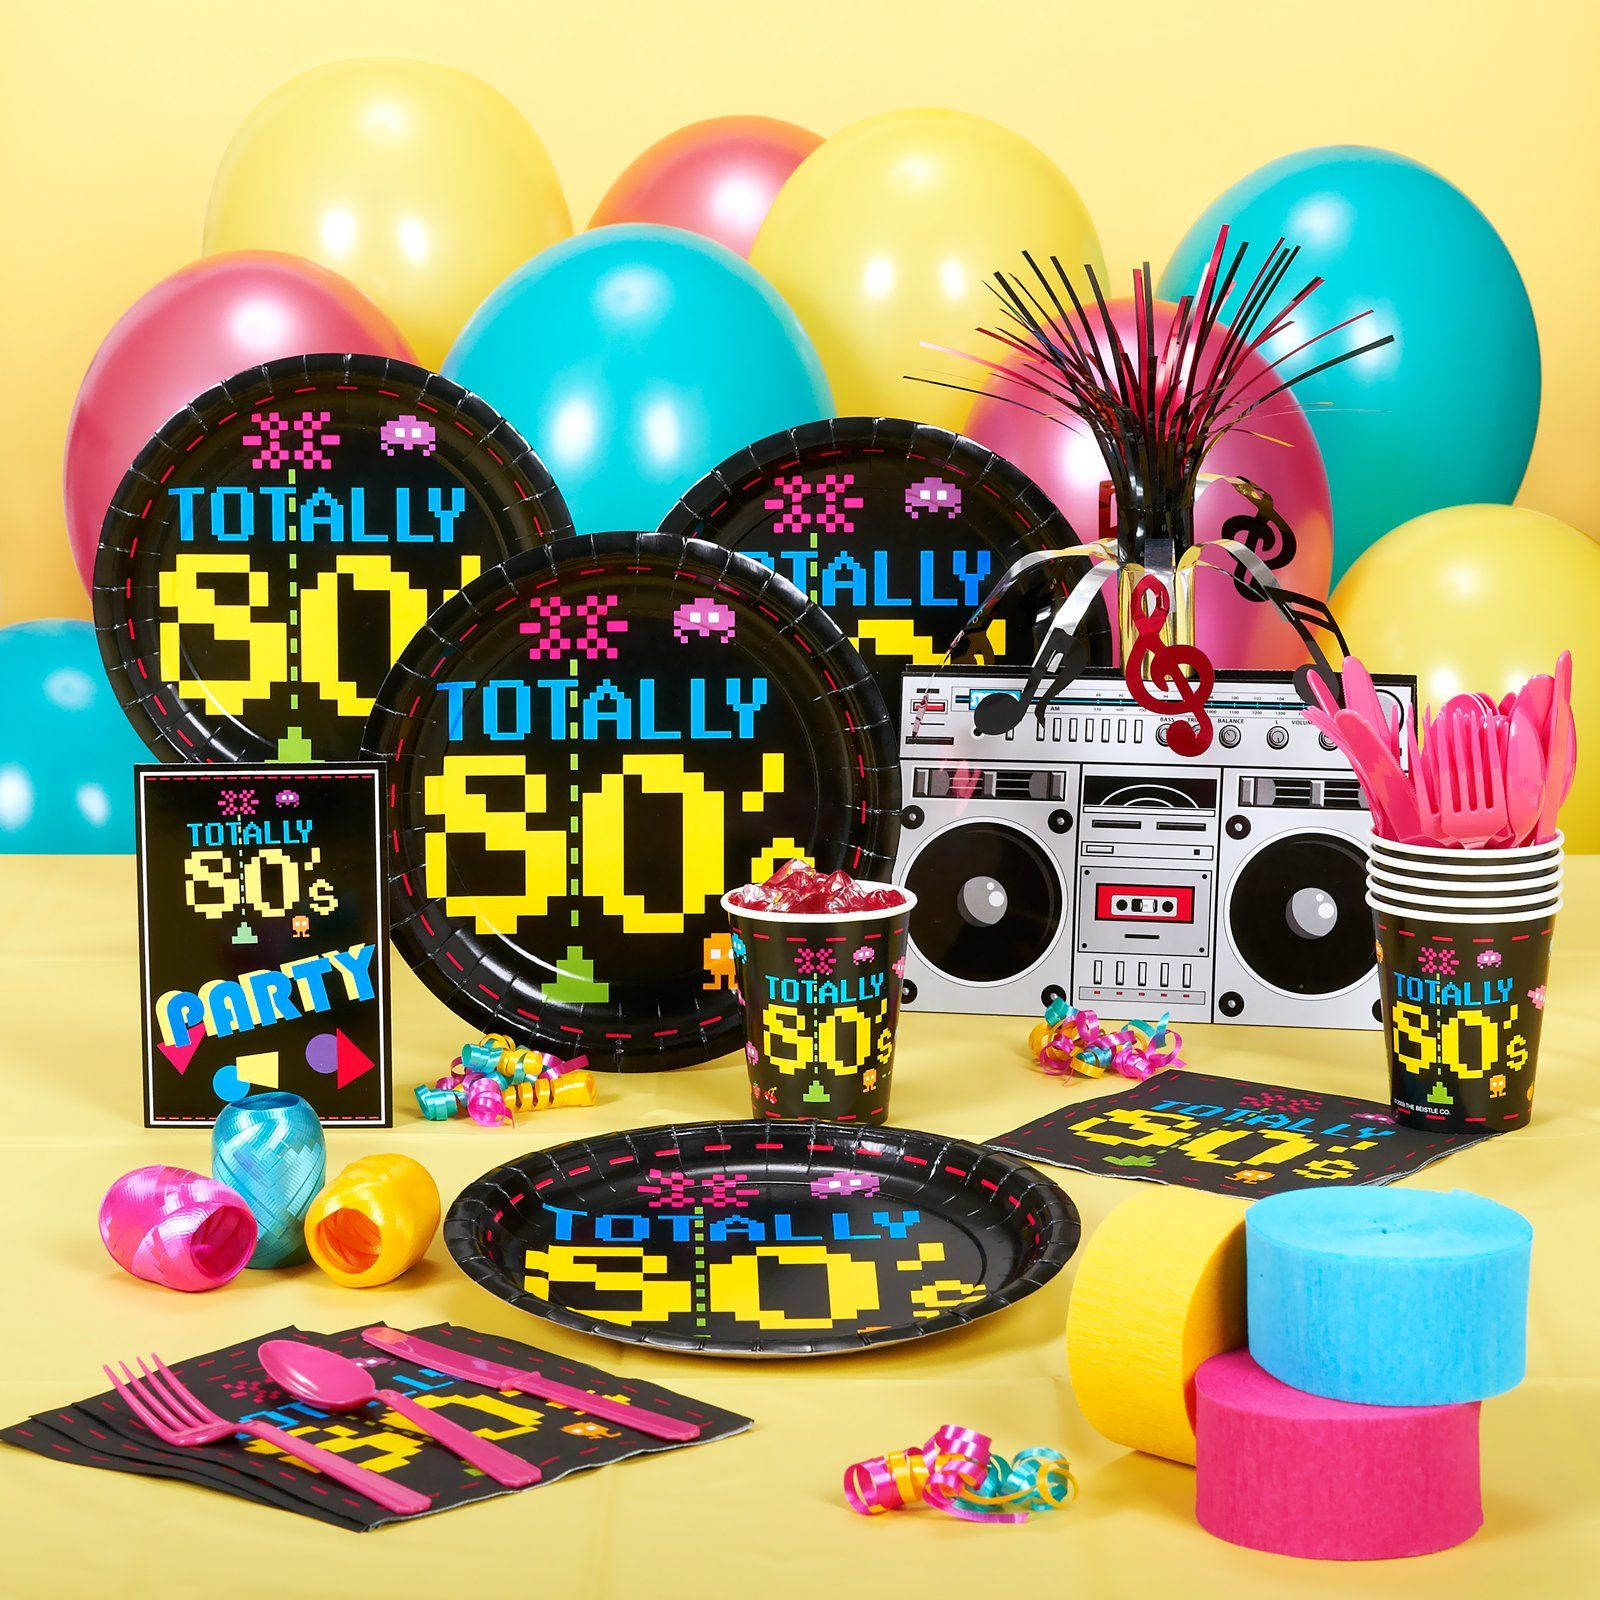 Totally 80's Party Supplies, 79858 80s party decorations